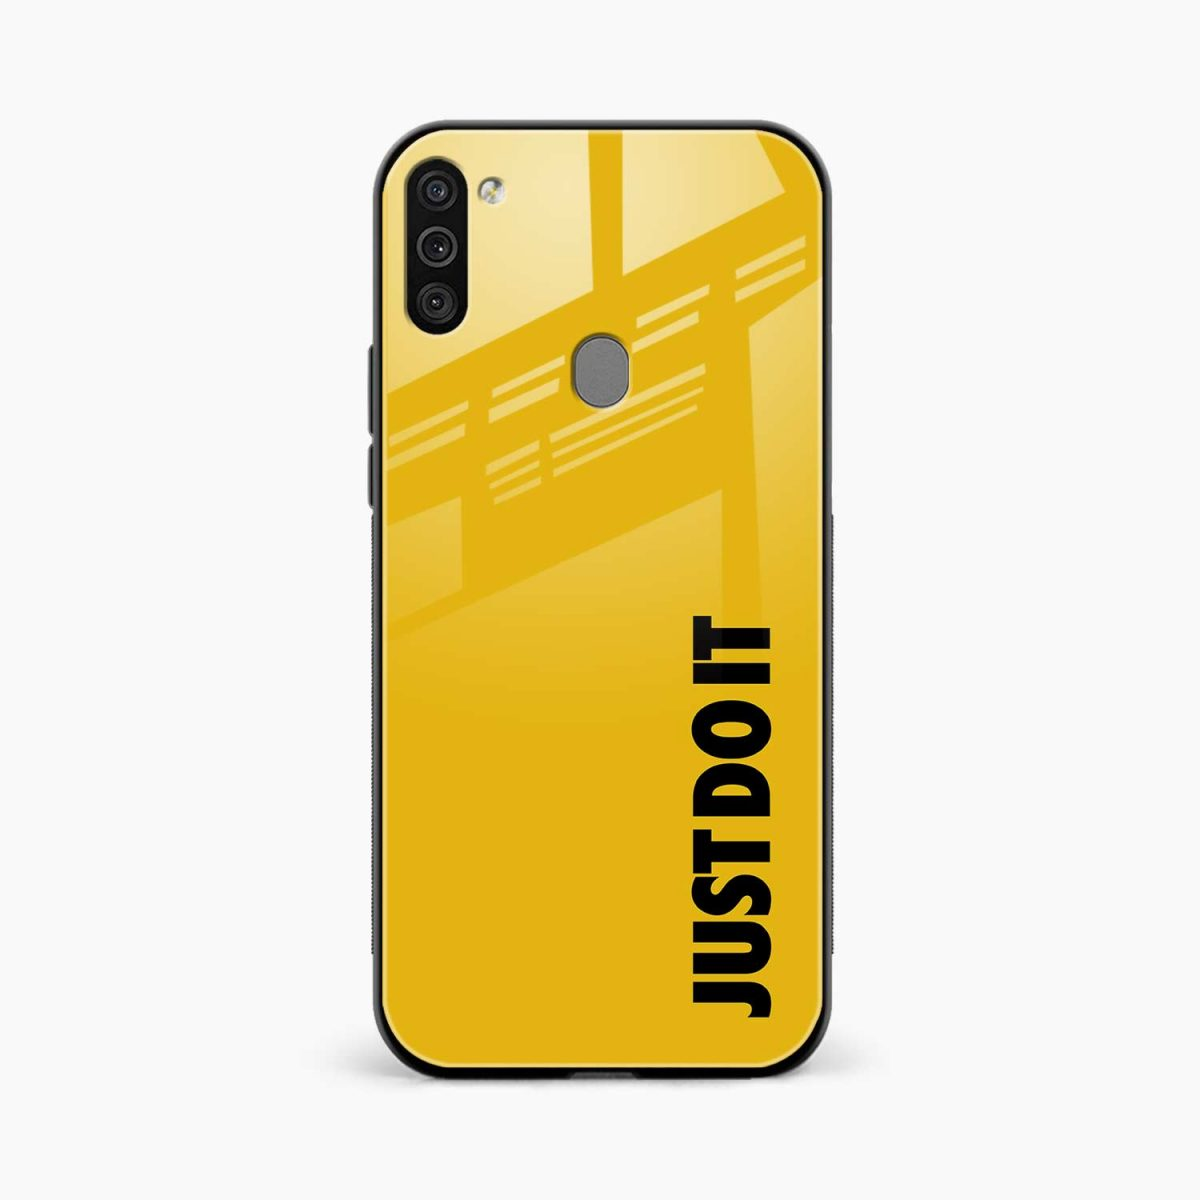 just do it front view samsung galaxy m11 back cover